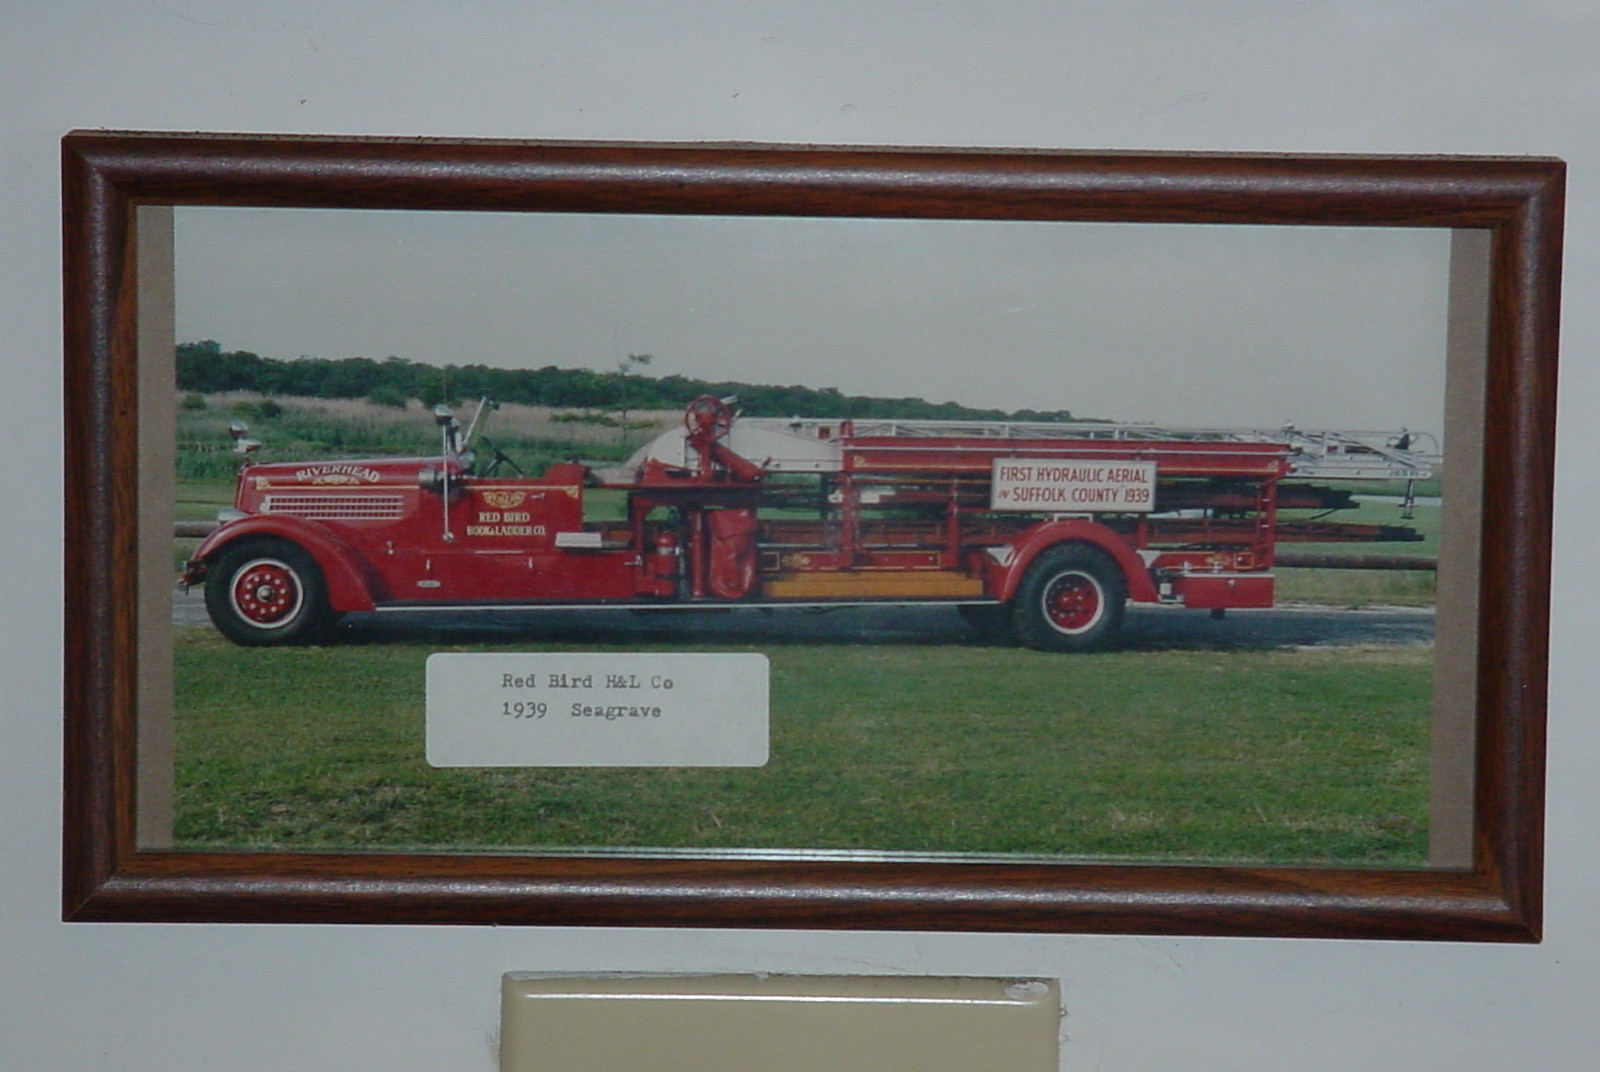 Photo of Riverhead F.D's 1939 Seagrave aerial